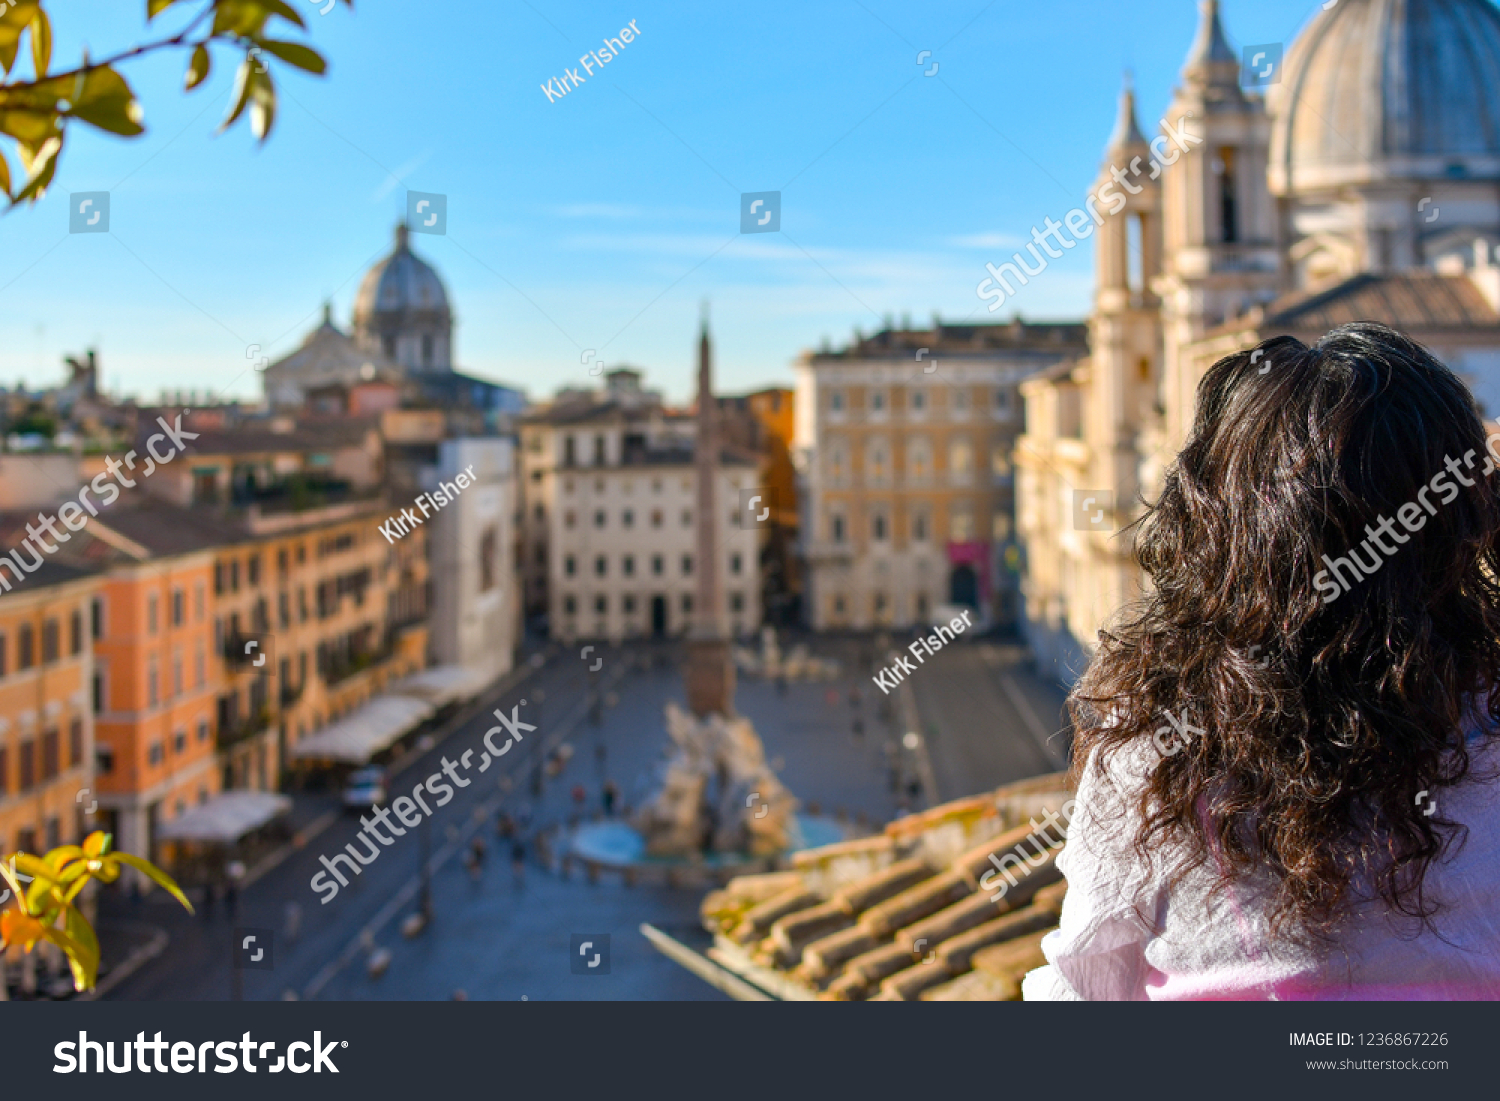 stock-photo-a-young-woman-gazes-out-over